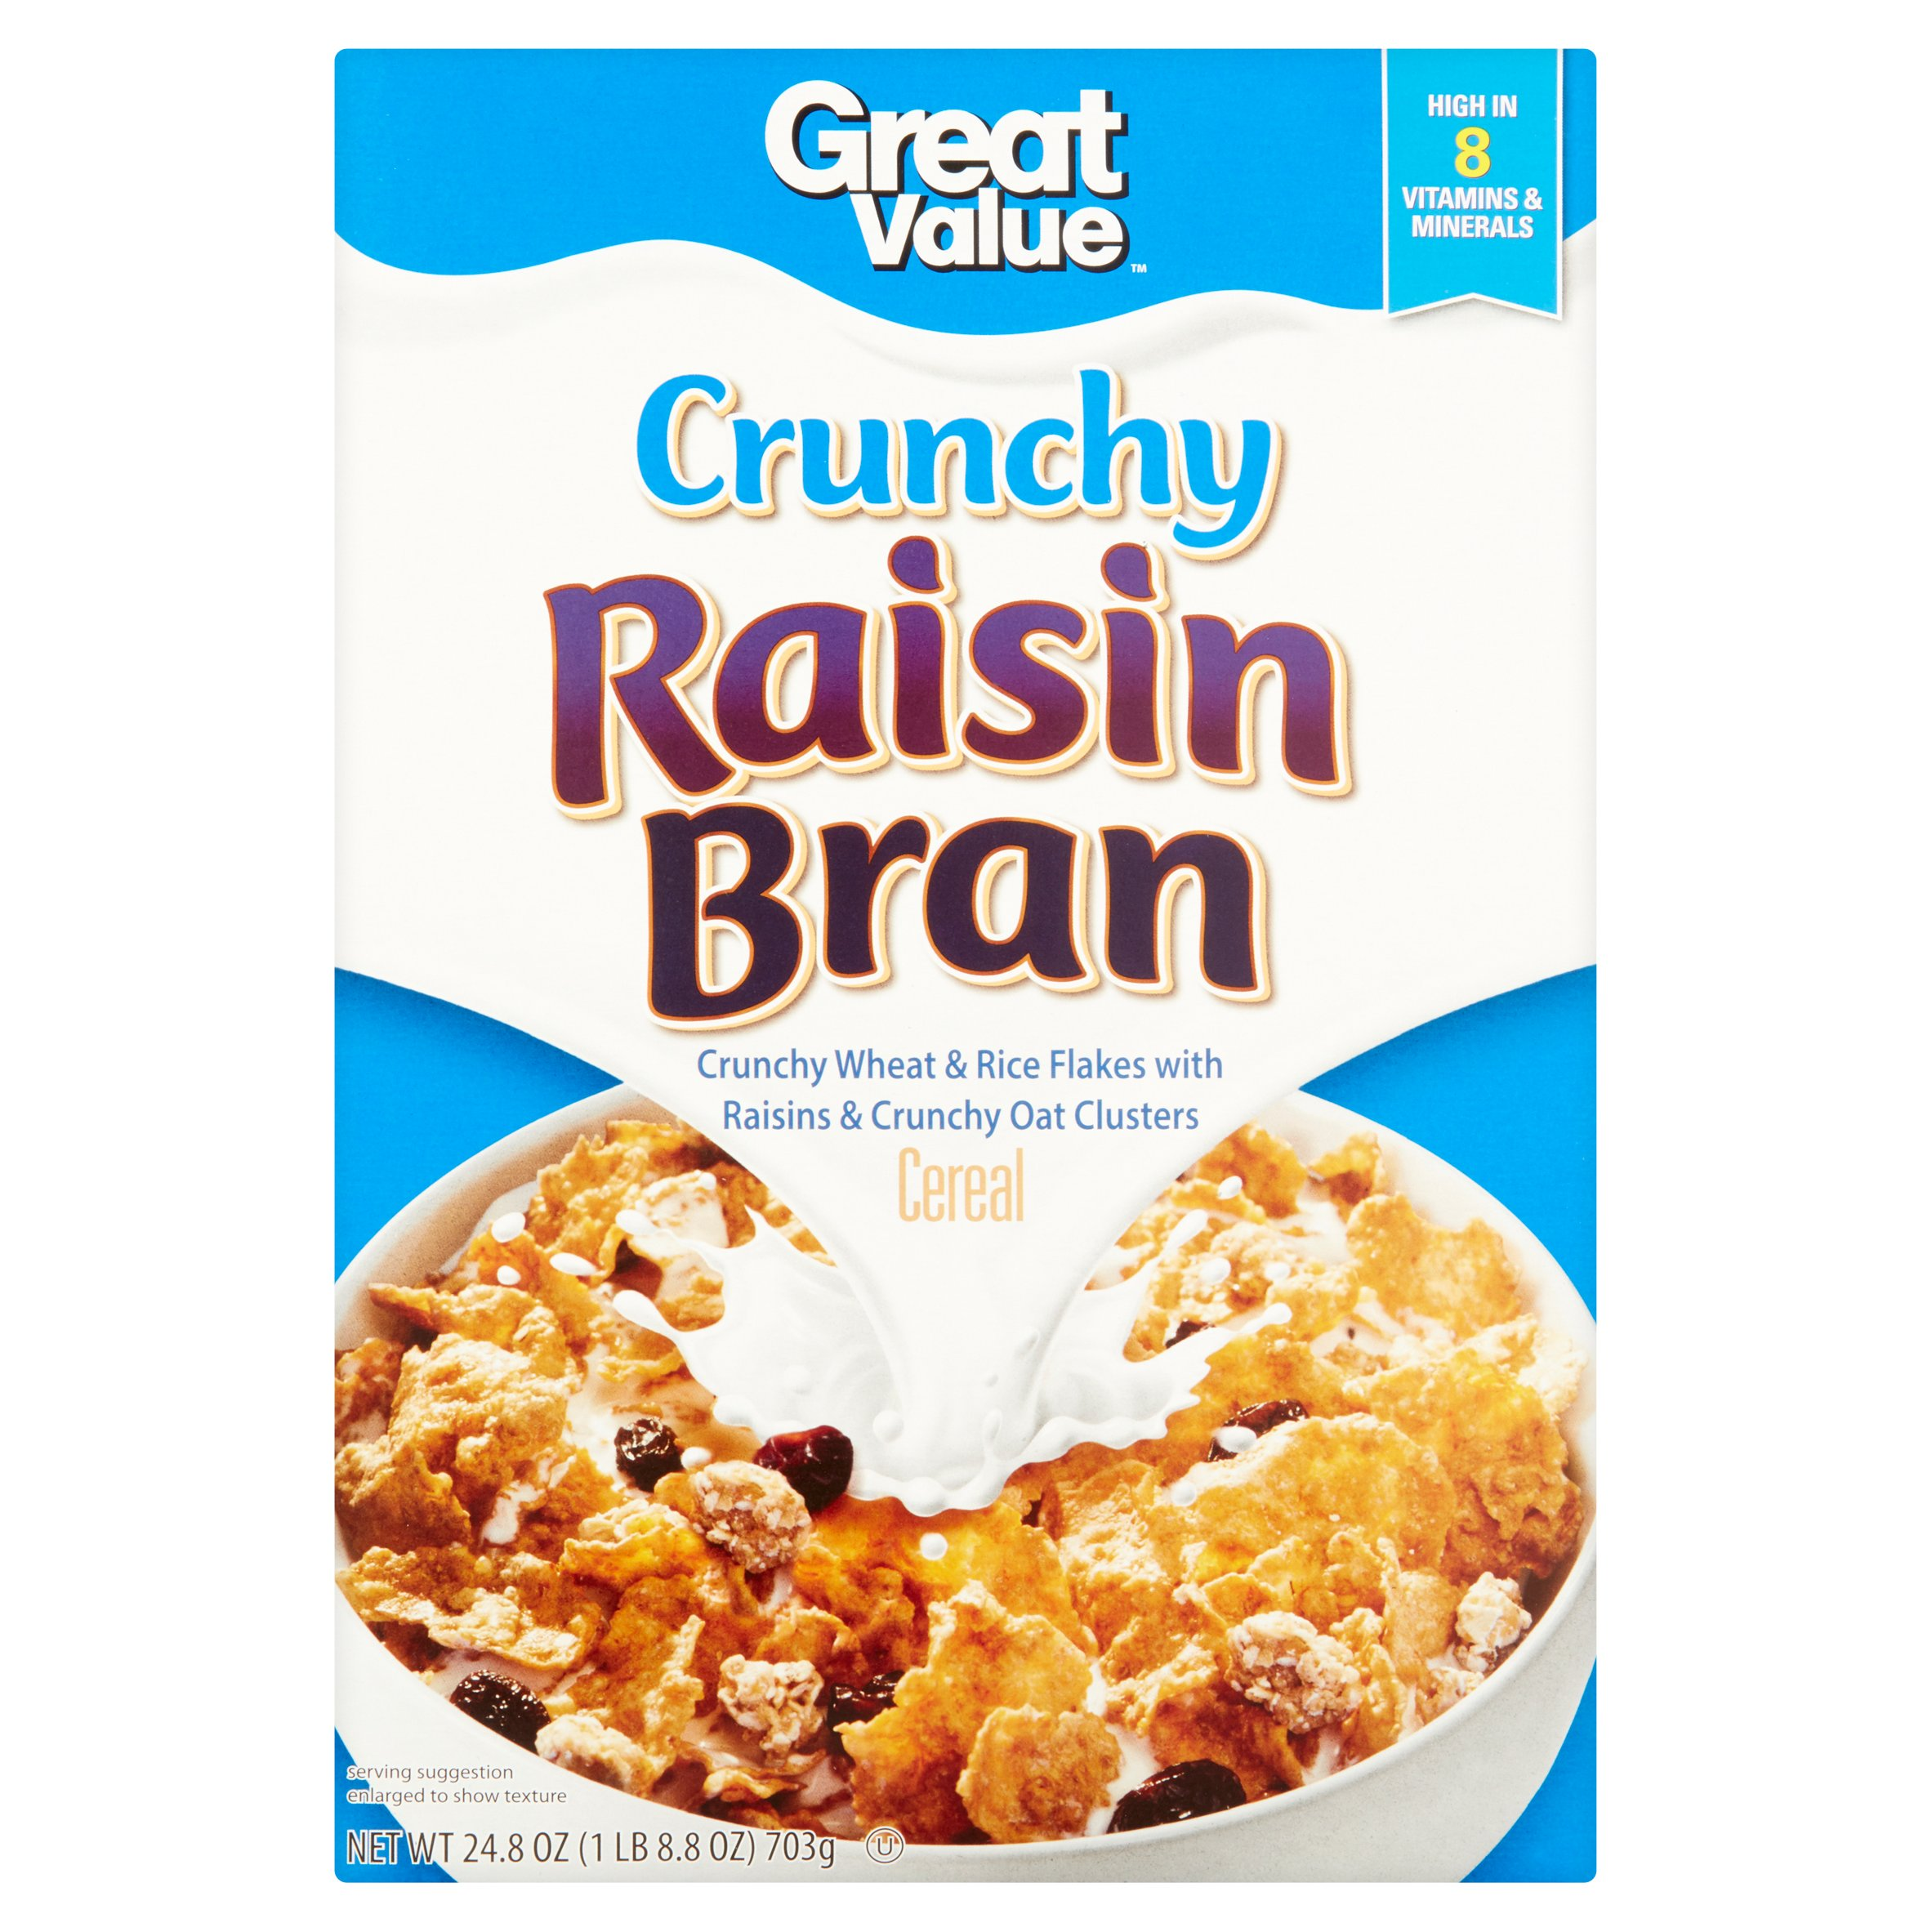 Great Value Crunchy Raisin Bran Cereal, 24.8 oz